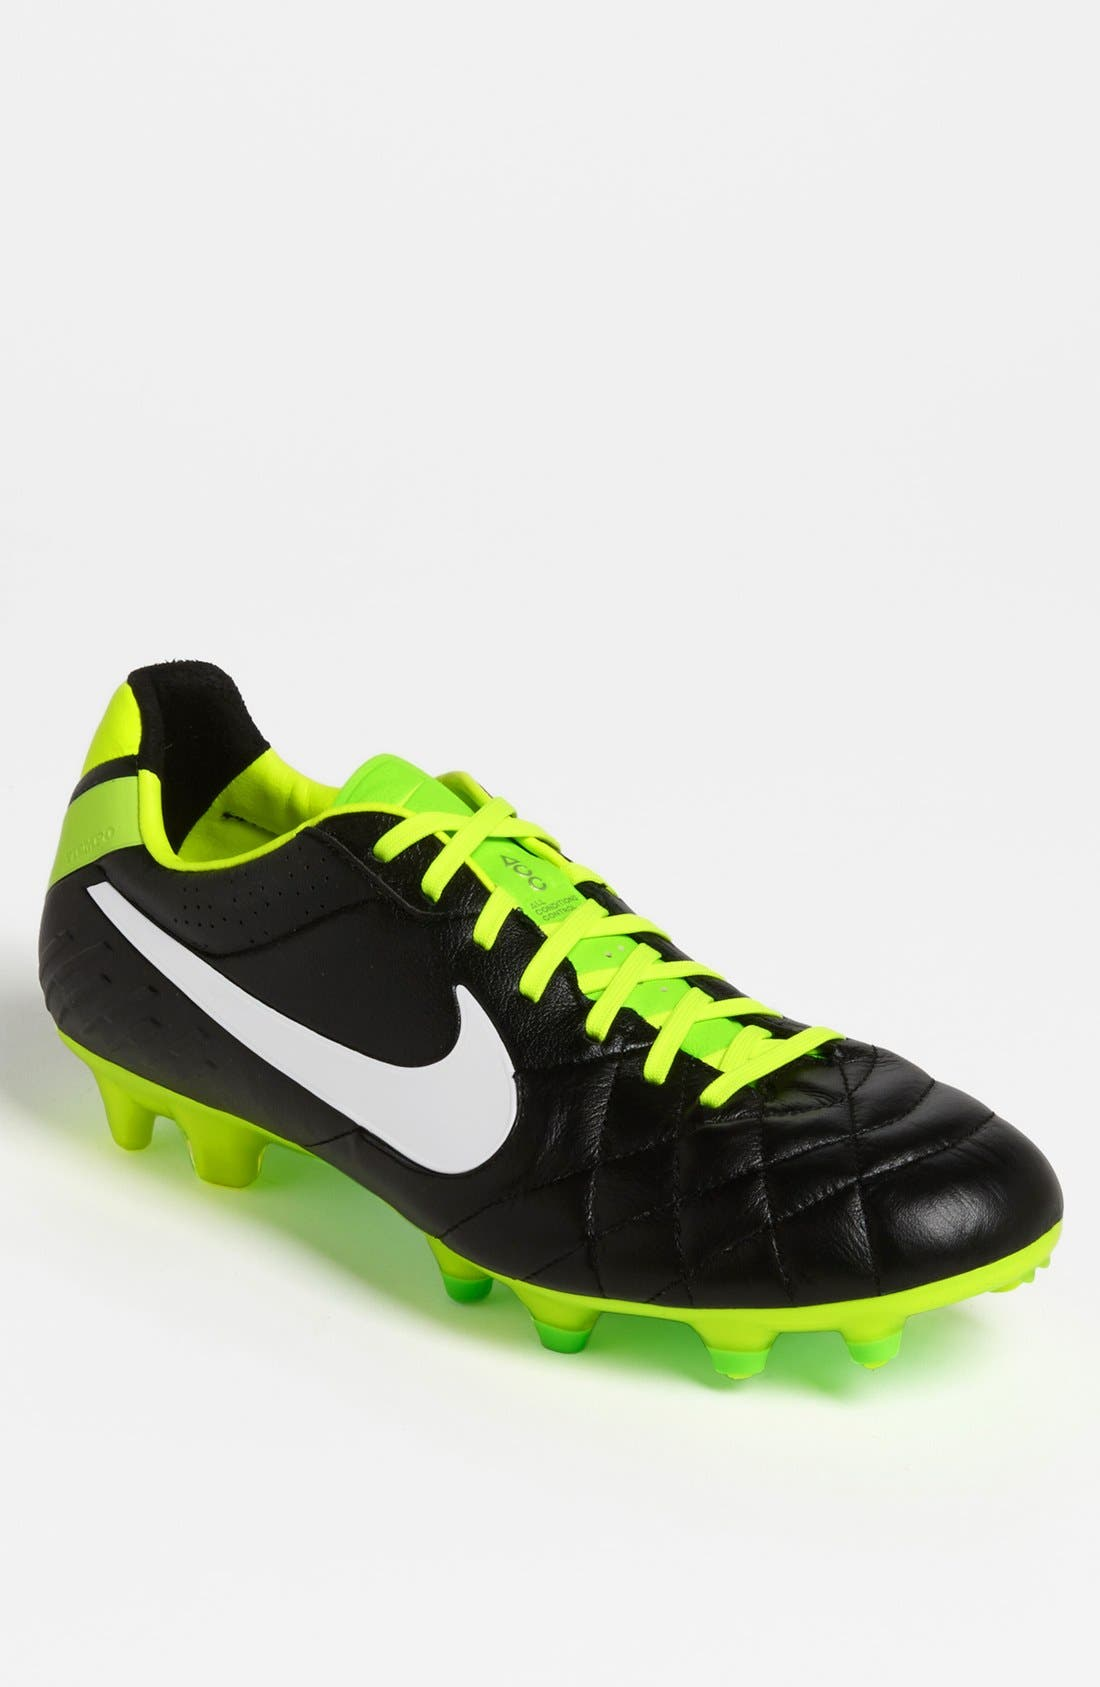 Main Image - Nike 'Tiempo Legend IV FG' Soccer Cleat (Men)